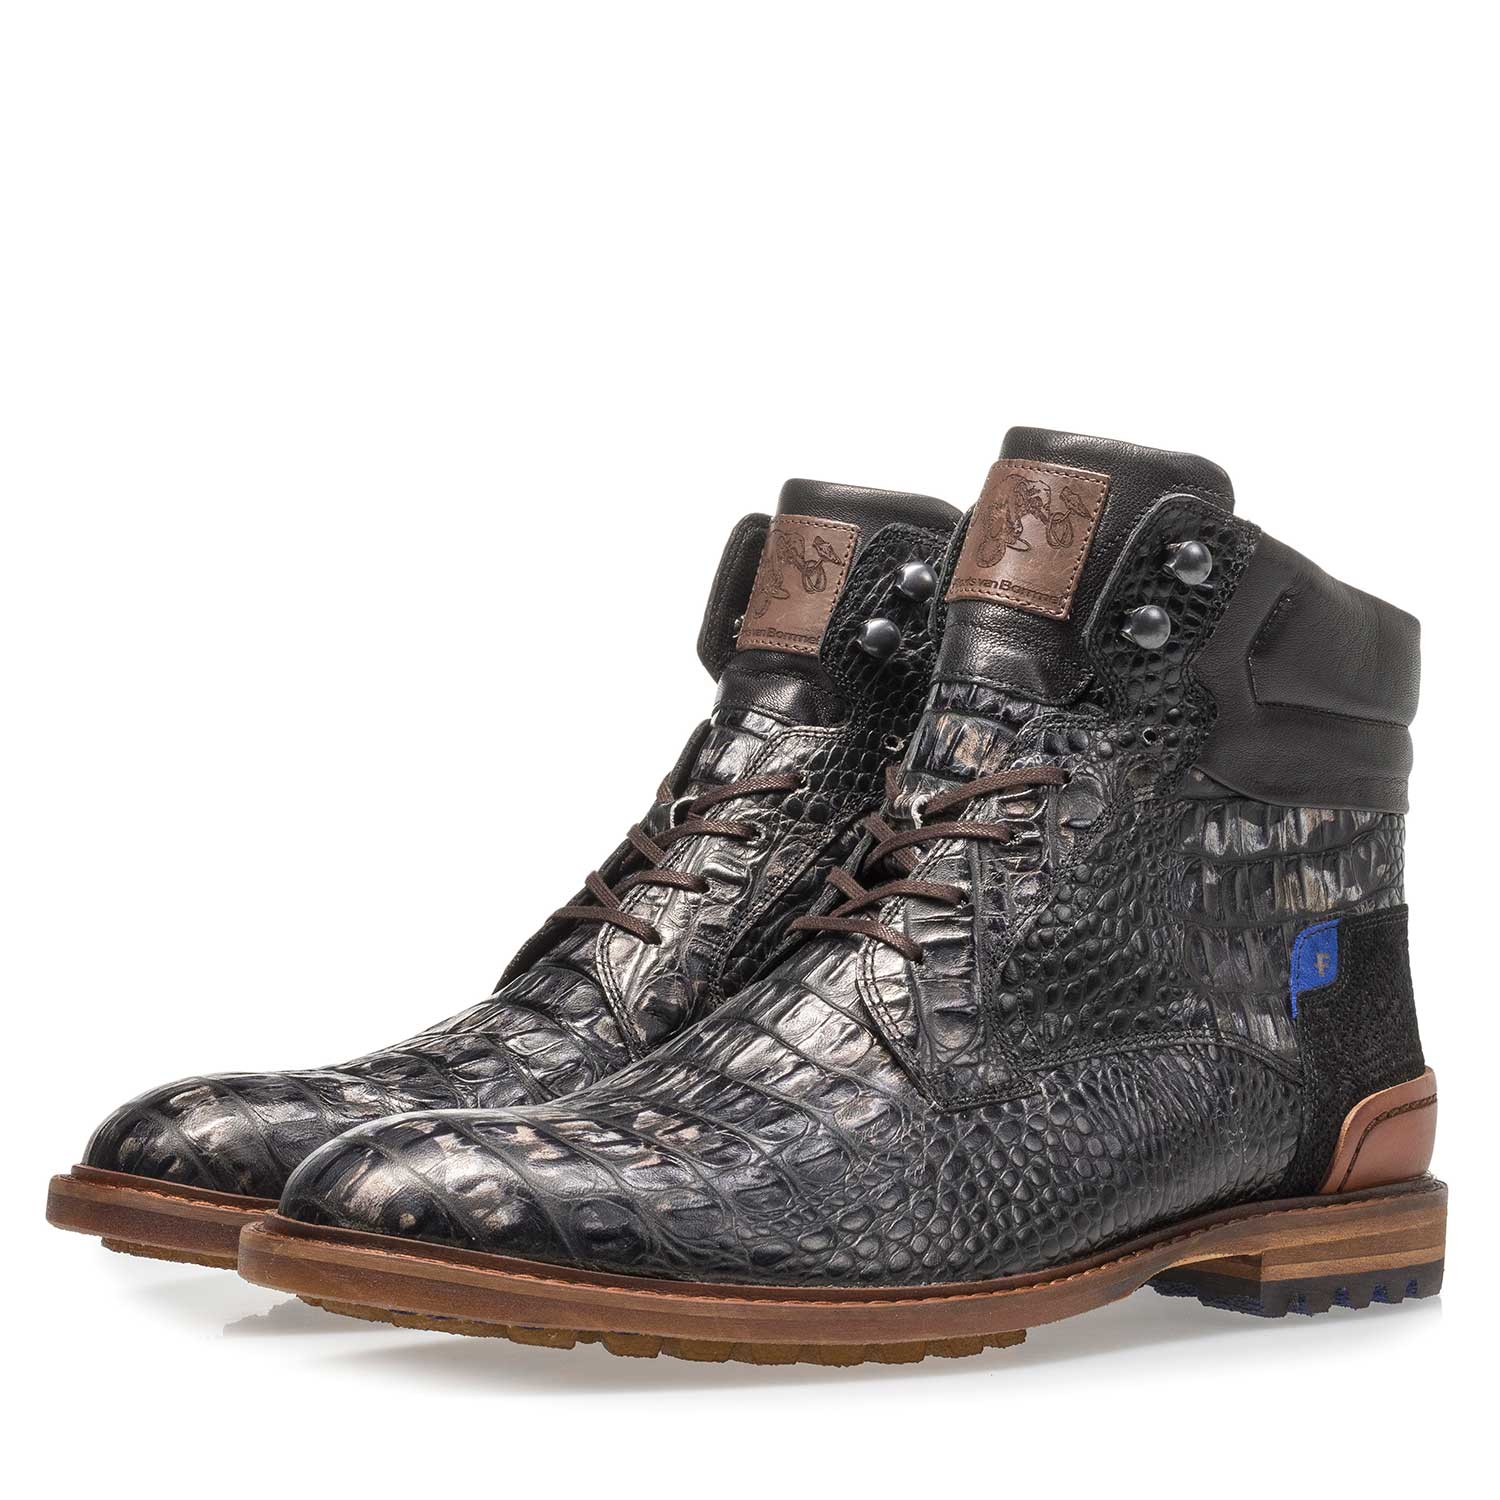 10234/17 - Black leather lace boot with croco print